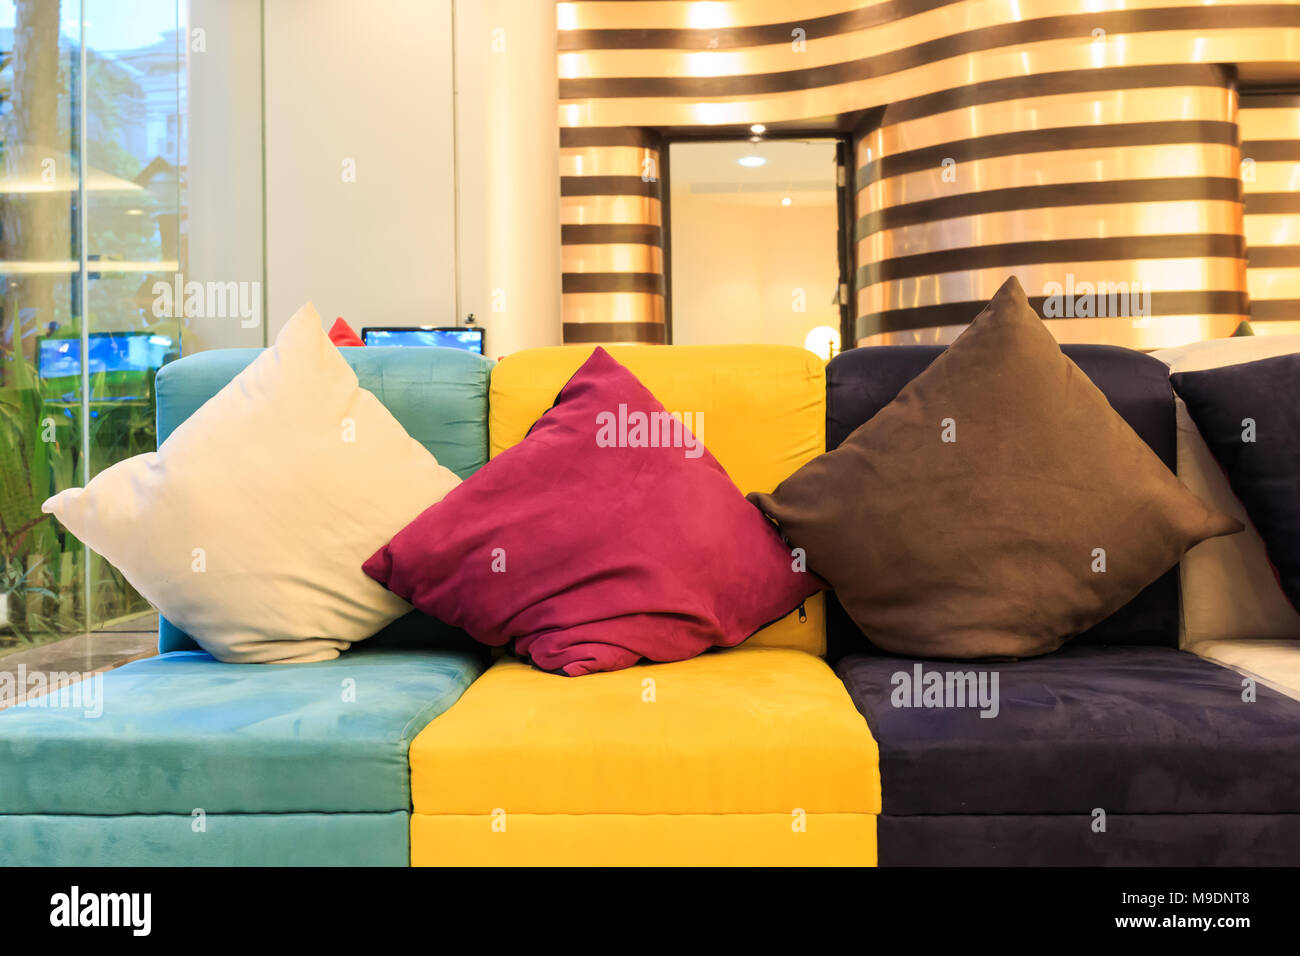 Decorative Pillows On Colorful Leather Sofa Stock Photo Alamy